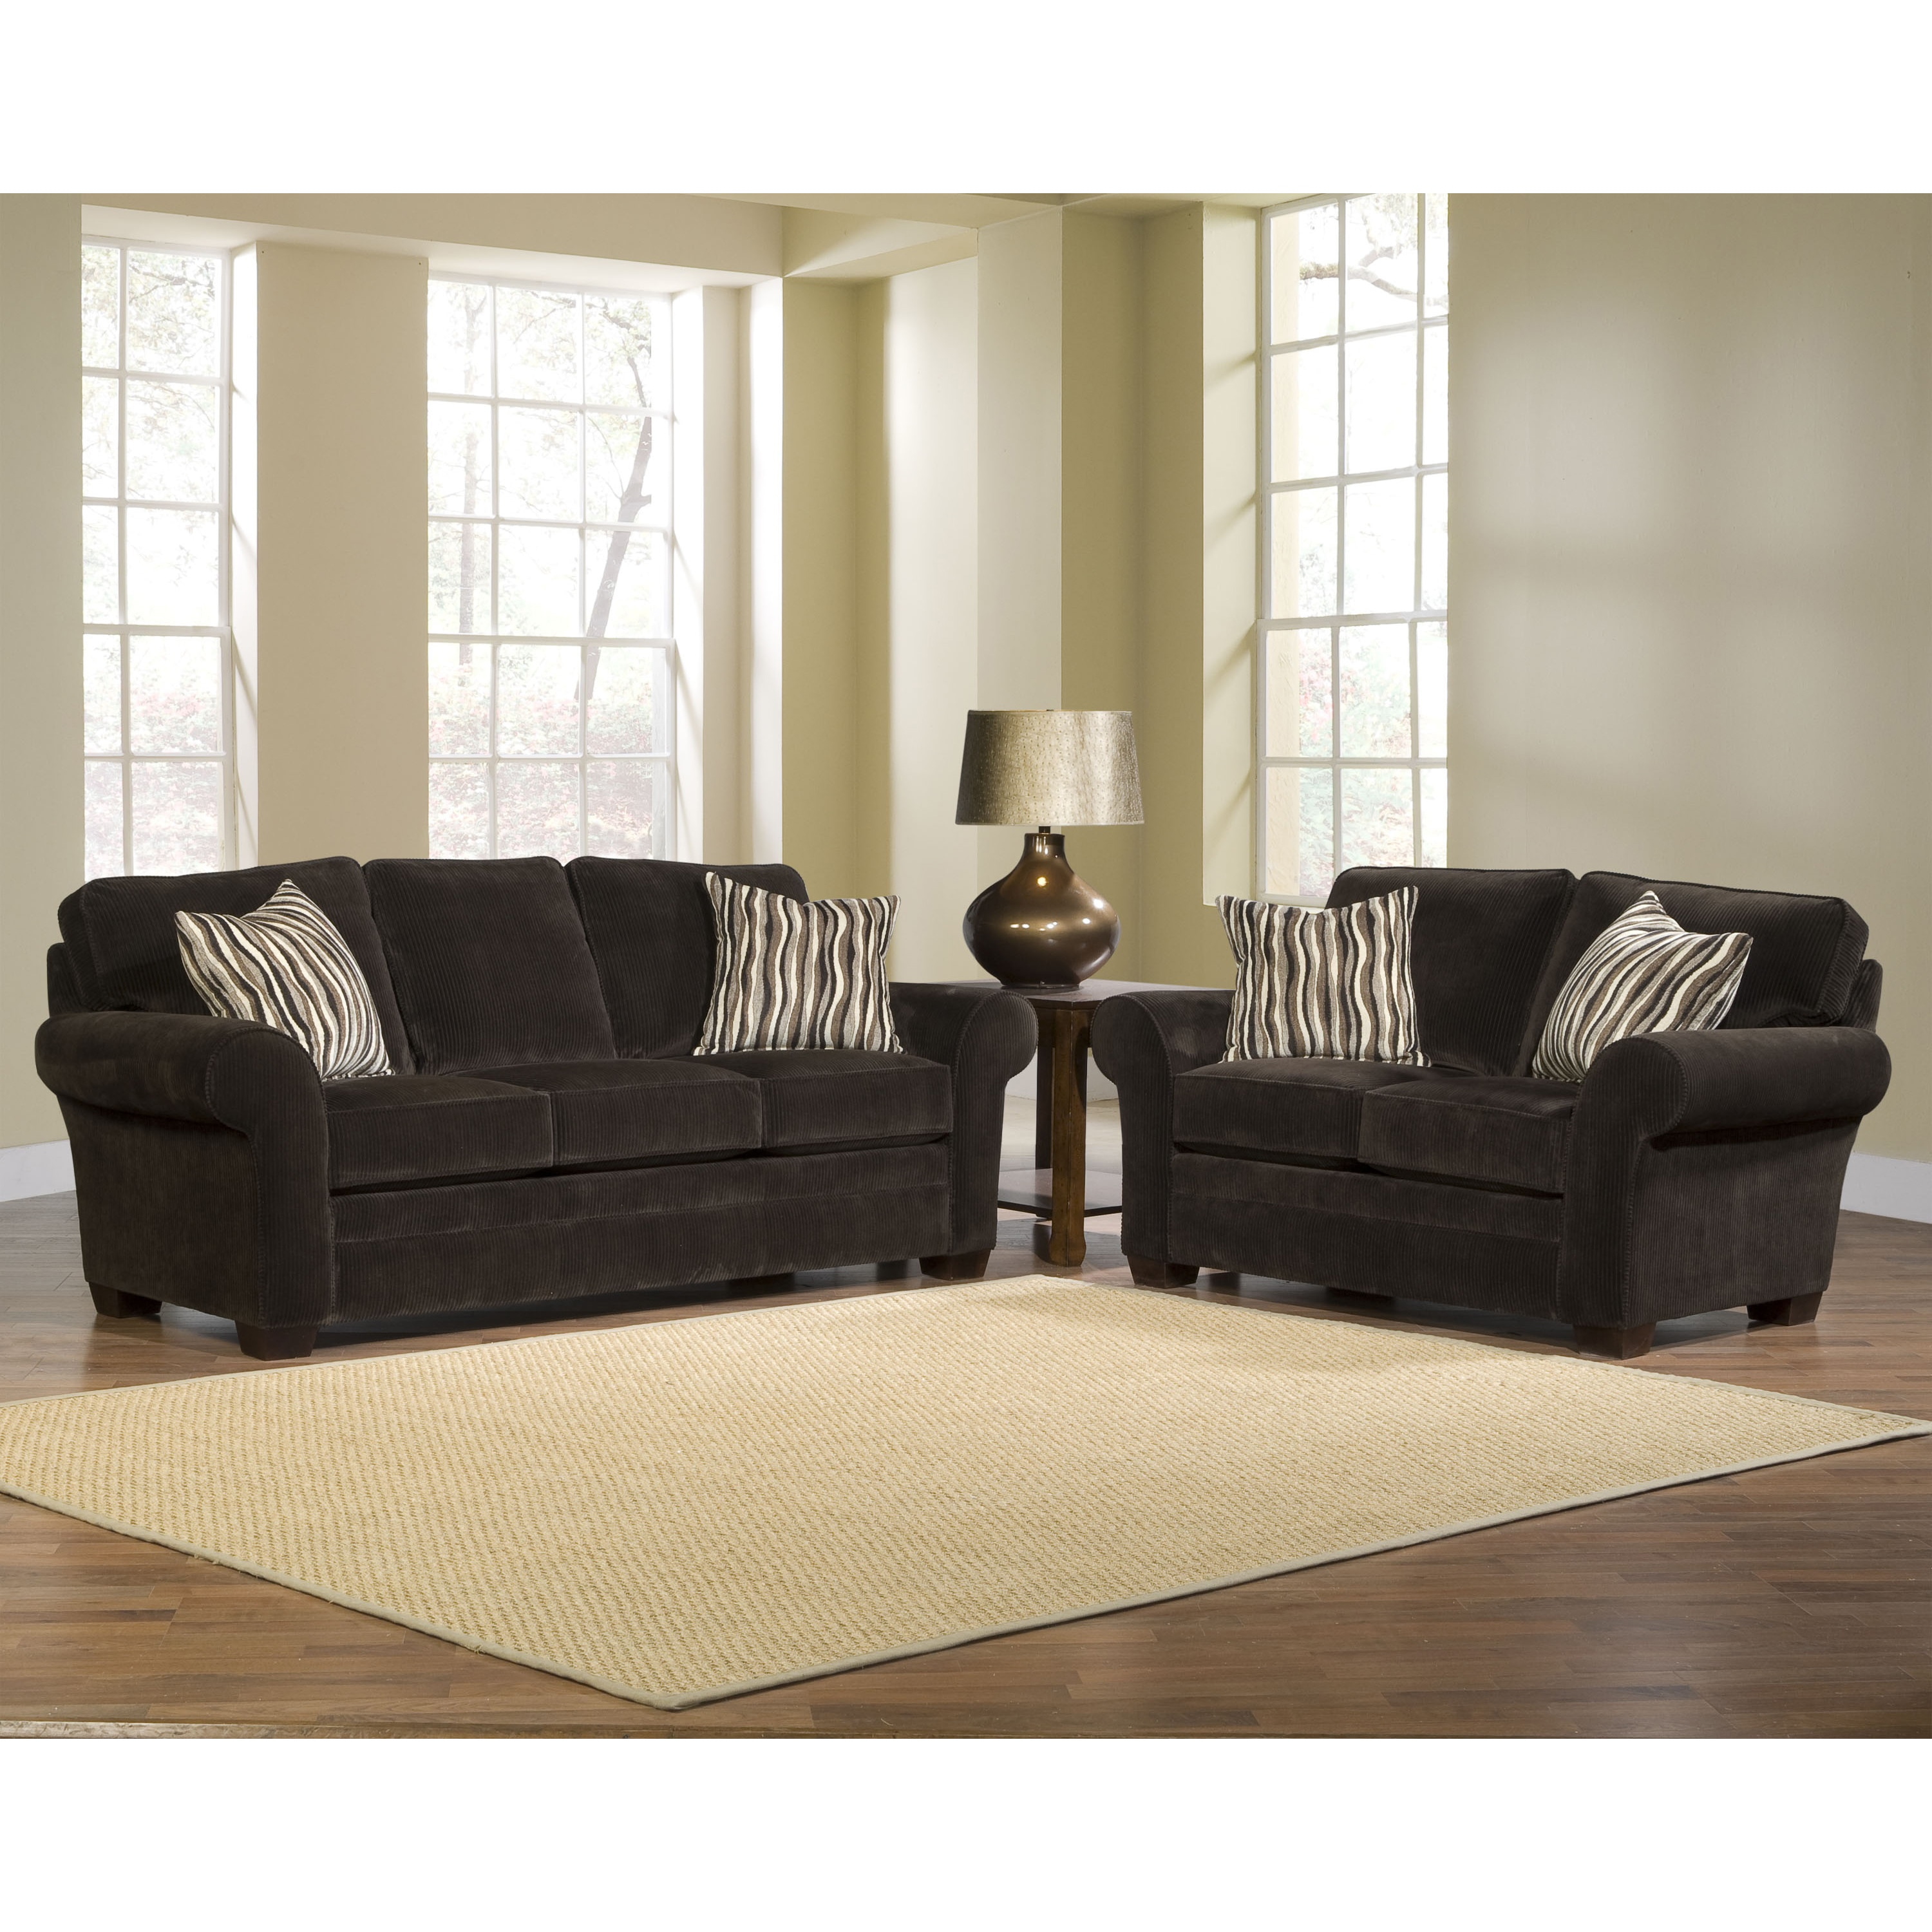 Broyhill Brown Corduroy Sofa Broyhill Zoey 2 Piece Dark Chocolate Sofa Loveseat Pillows Set